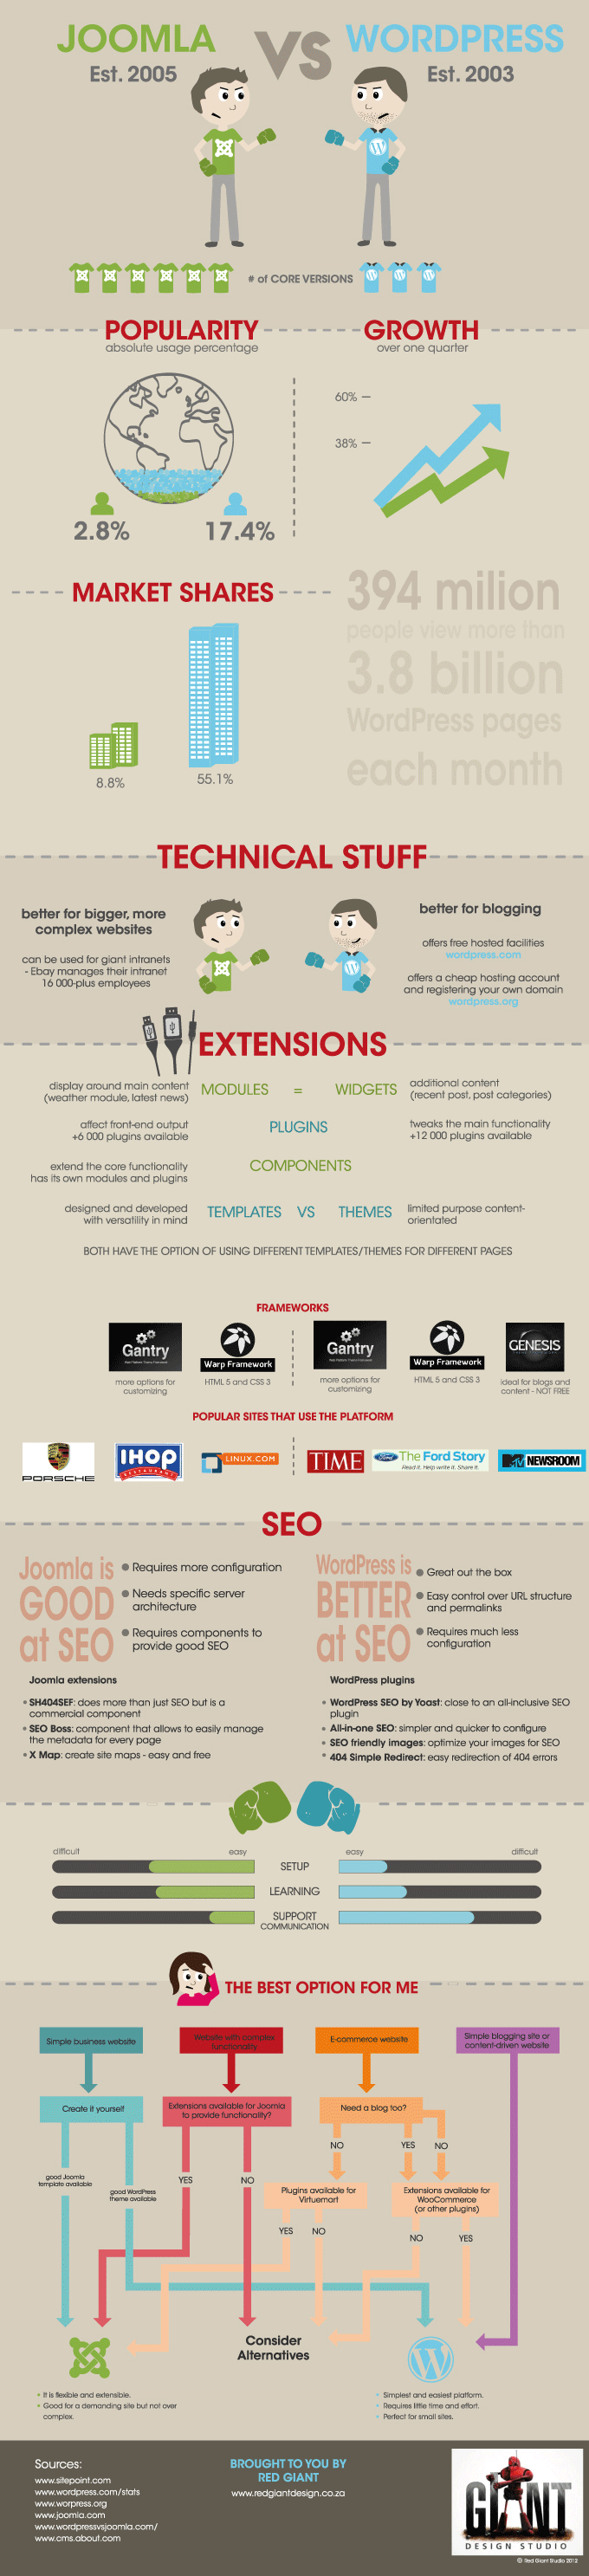 WordPress v Joomla - Infographic by Red Giant Design